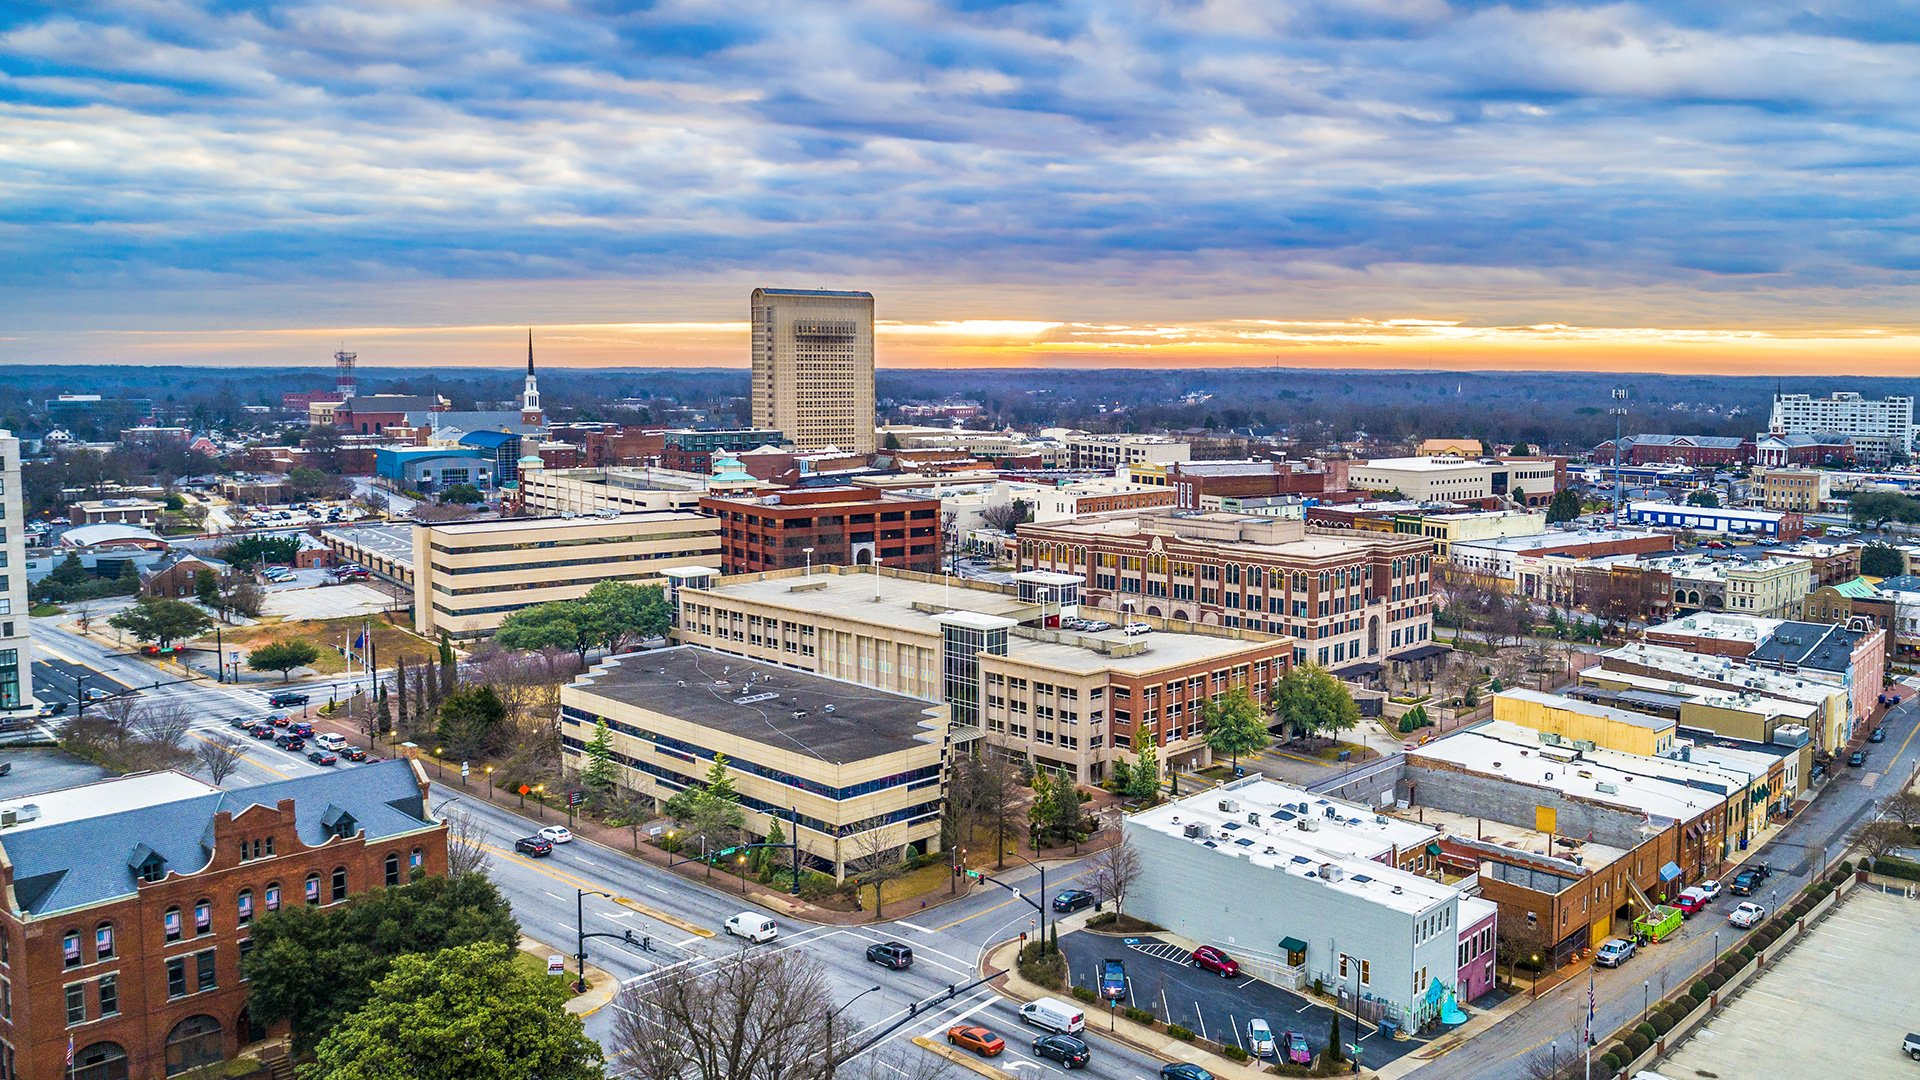 Spartanburg Development Over the Years